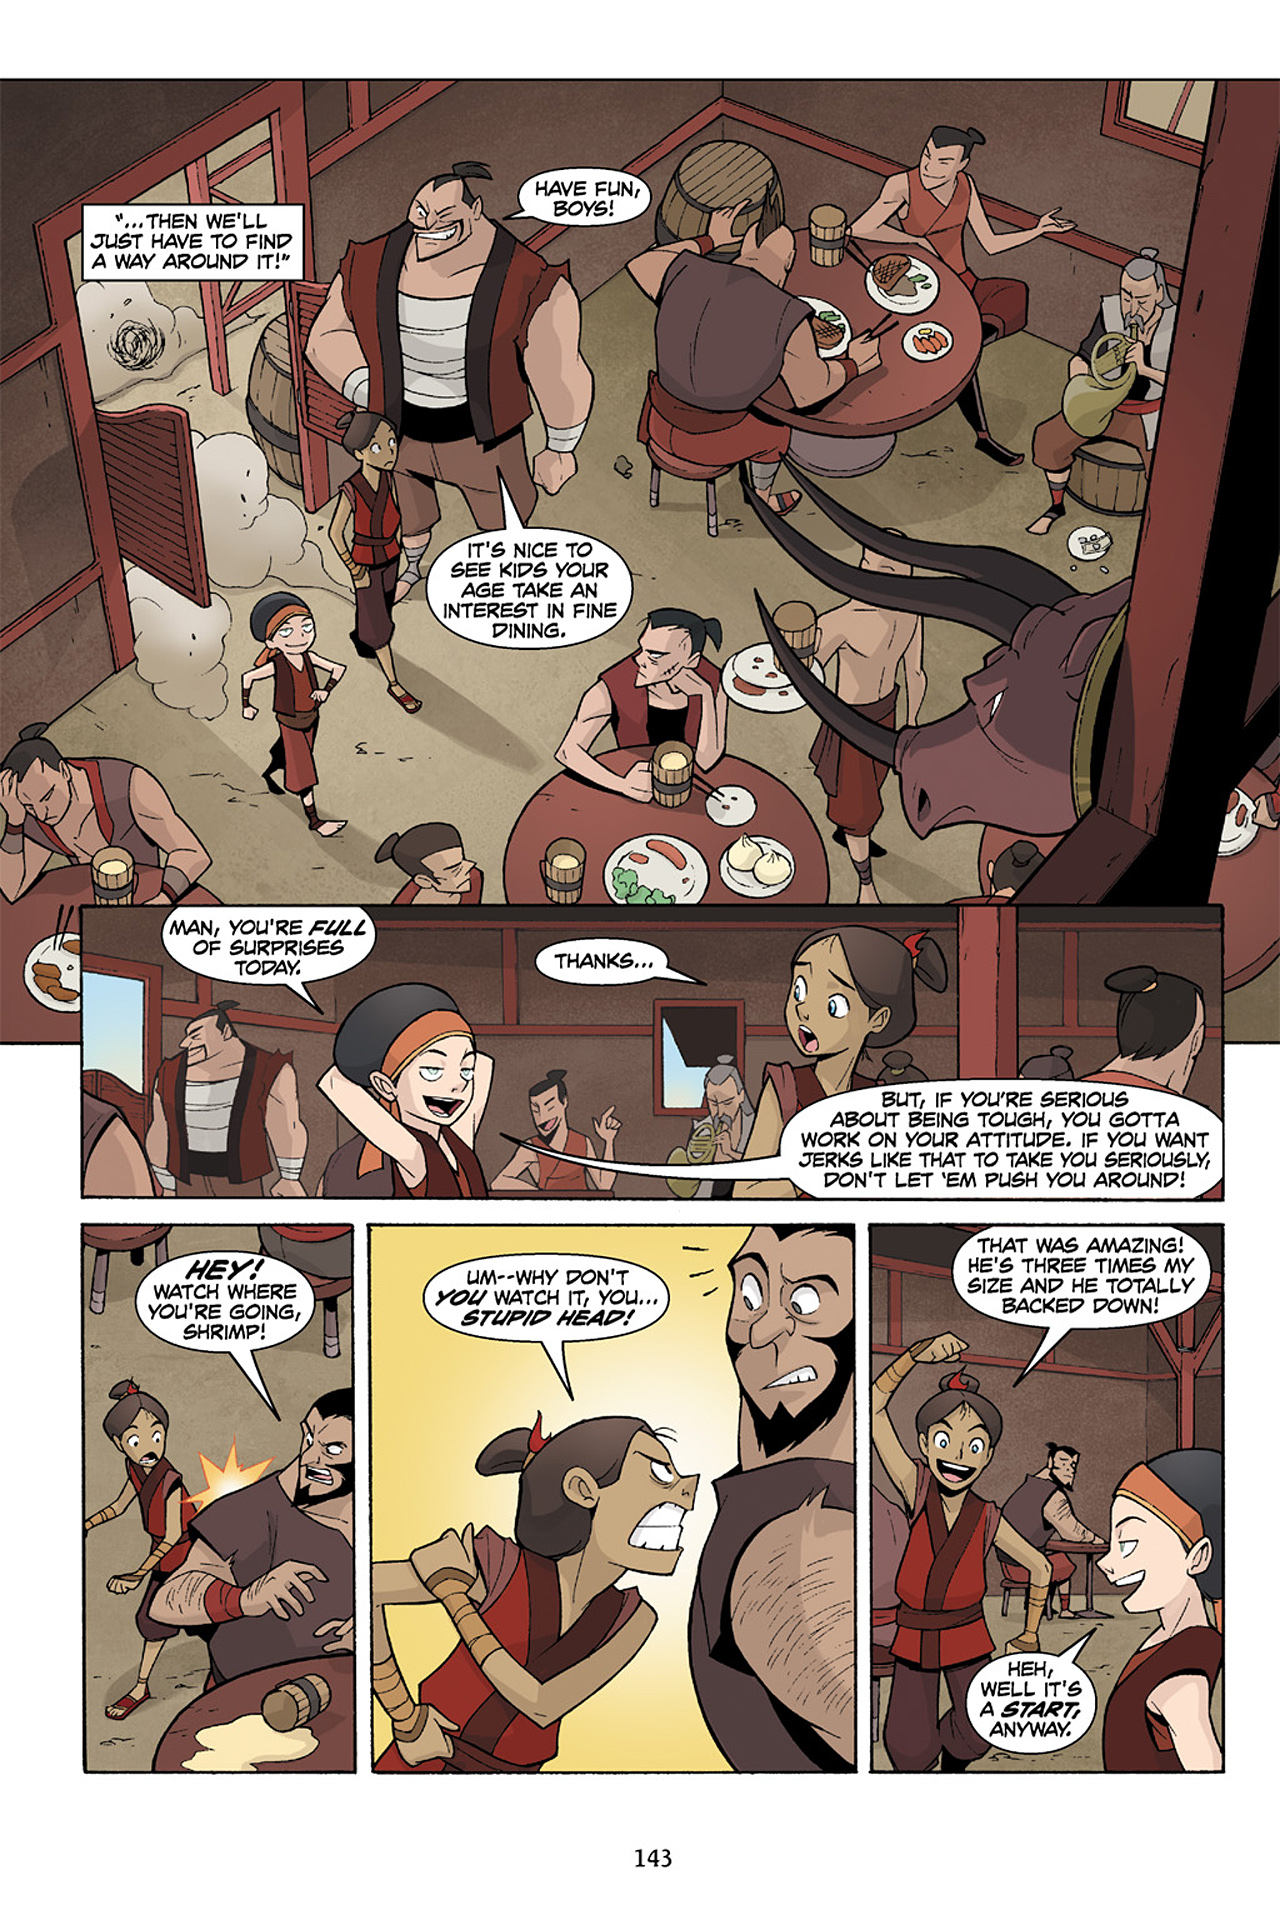 Nickelodeon Avatar: The Last Airbender - The Lost Adventures chap full pic 144